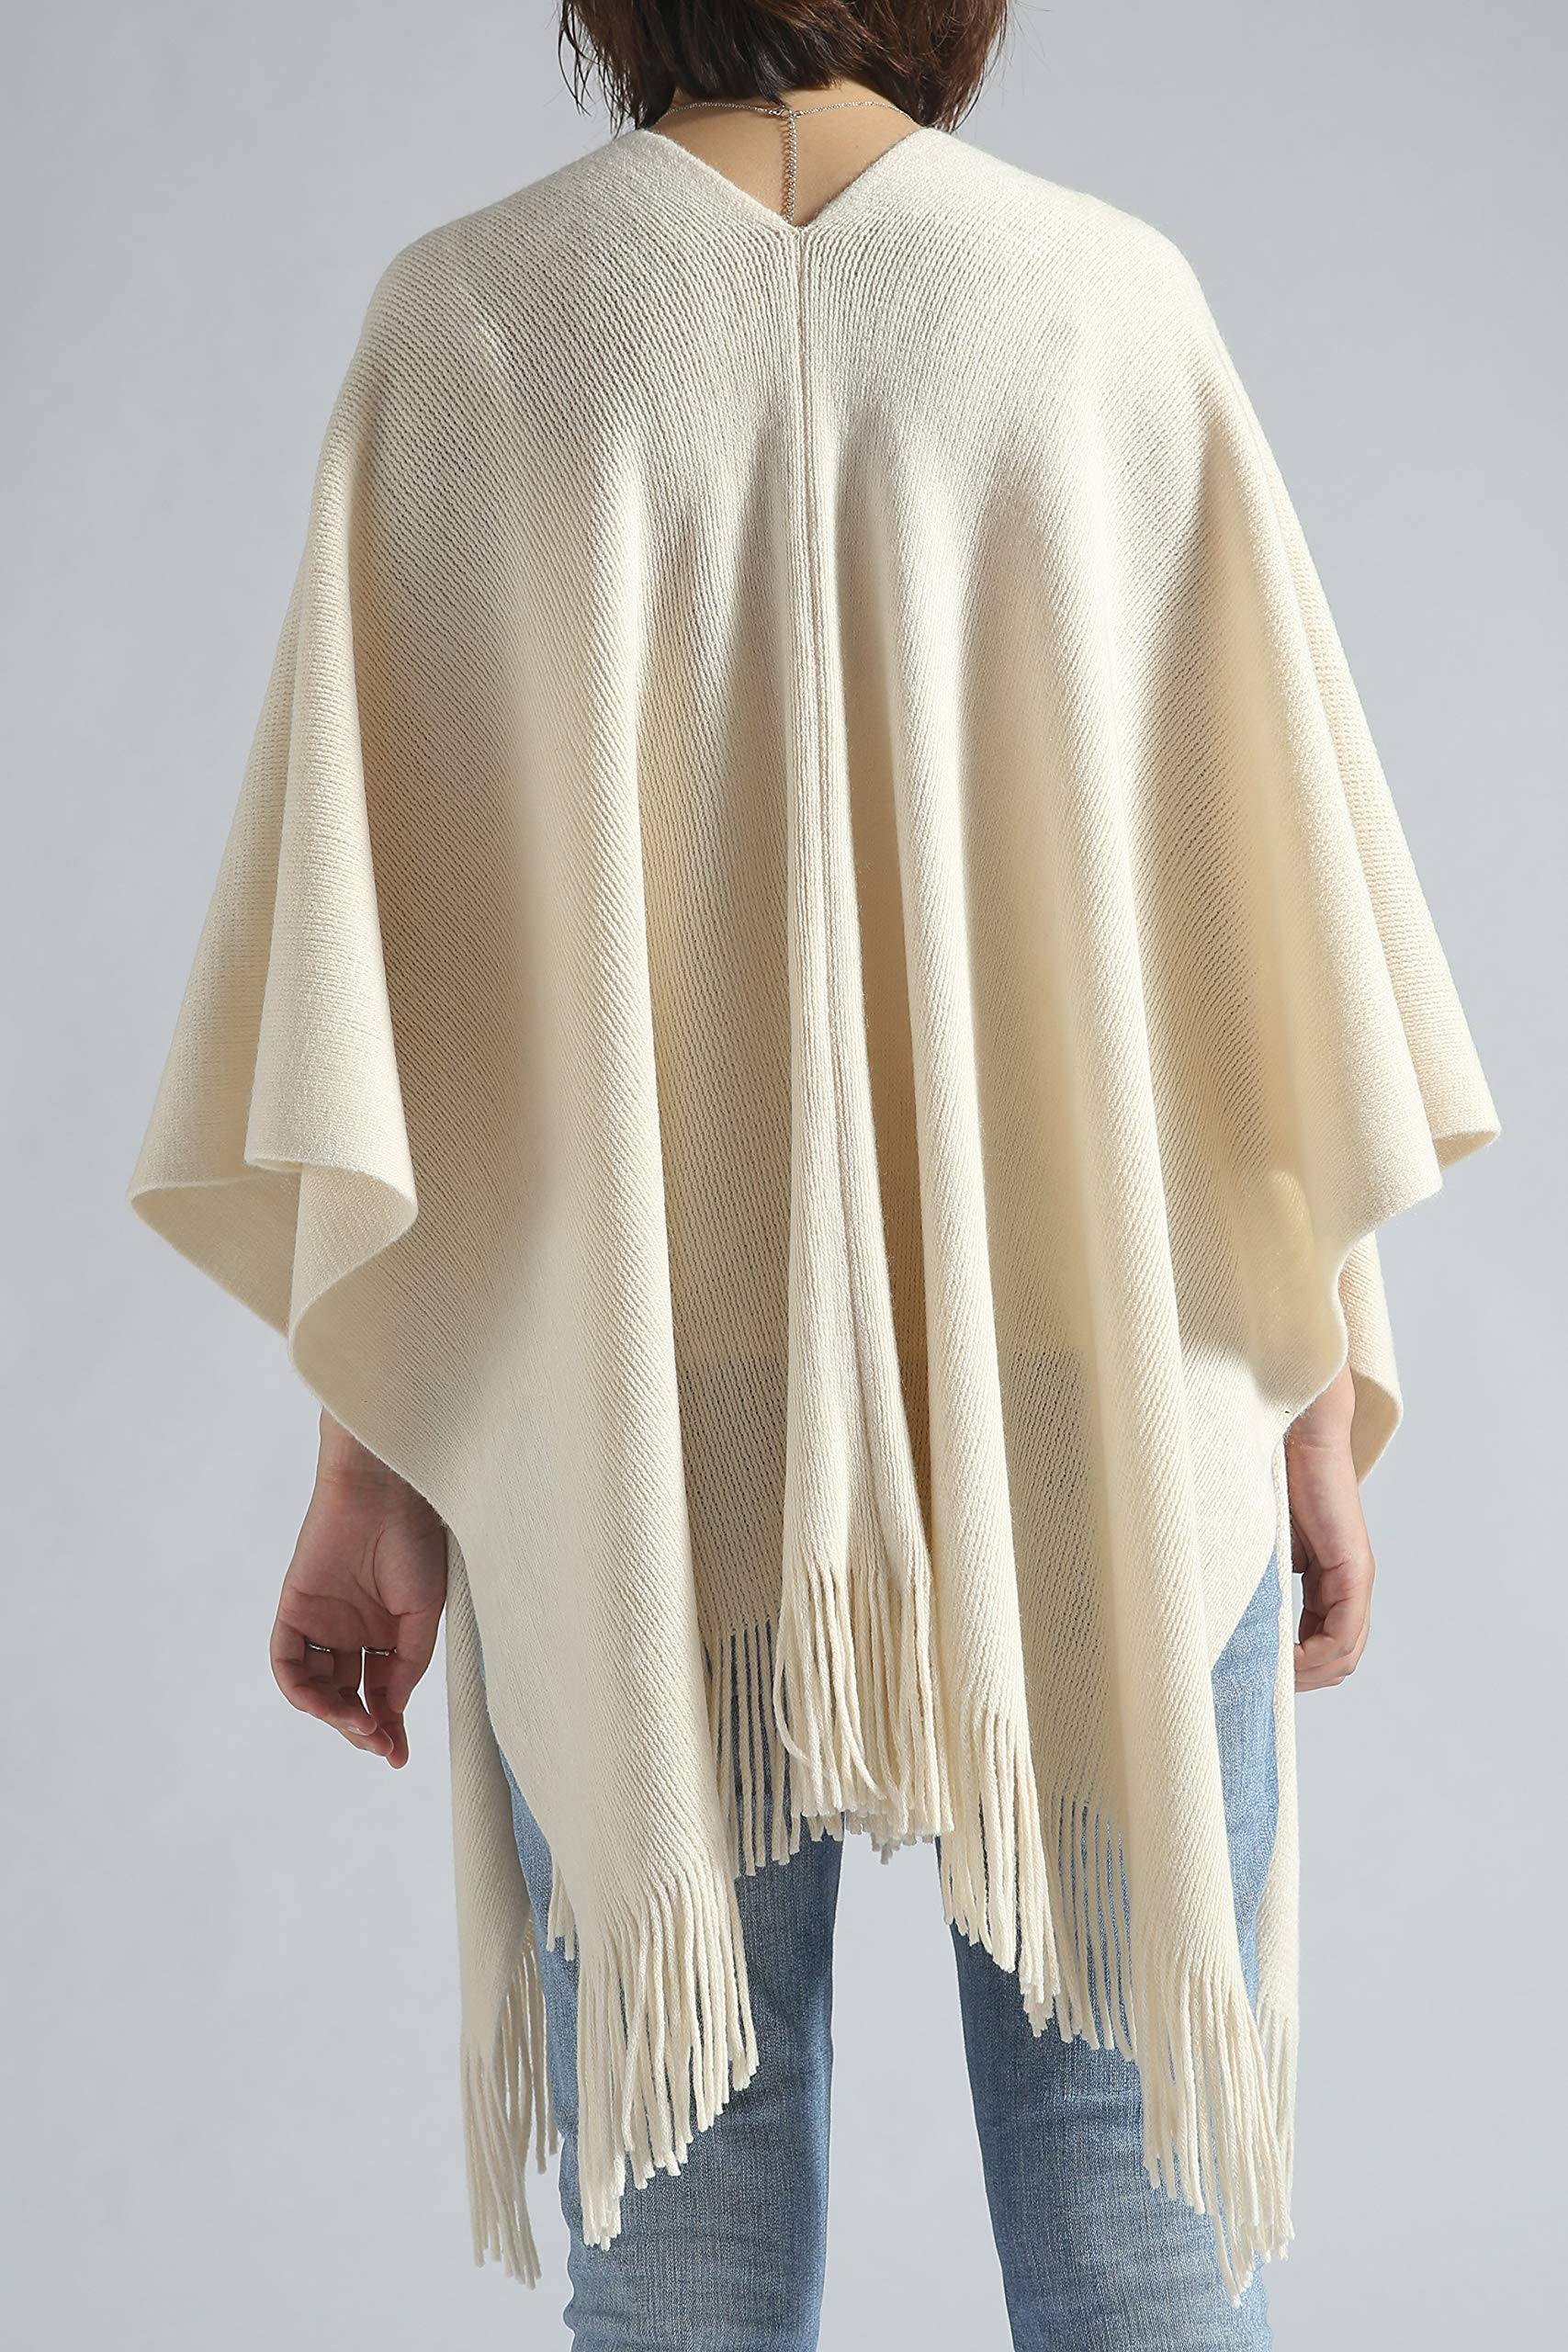 Women Poncho Shawl Cardigan Open Front Elegant Cape Wrap by Moss Rose (Image #6)